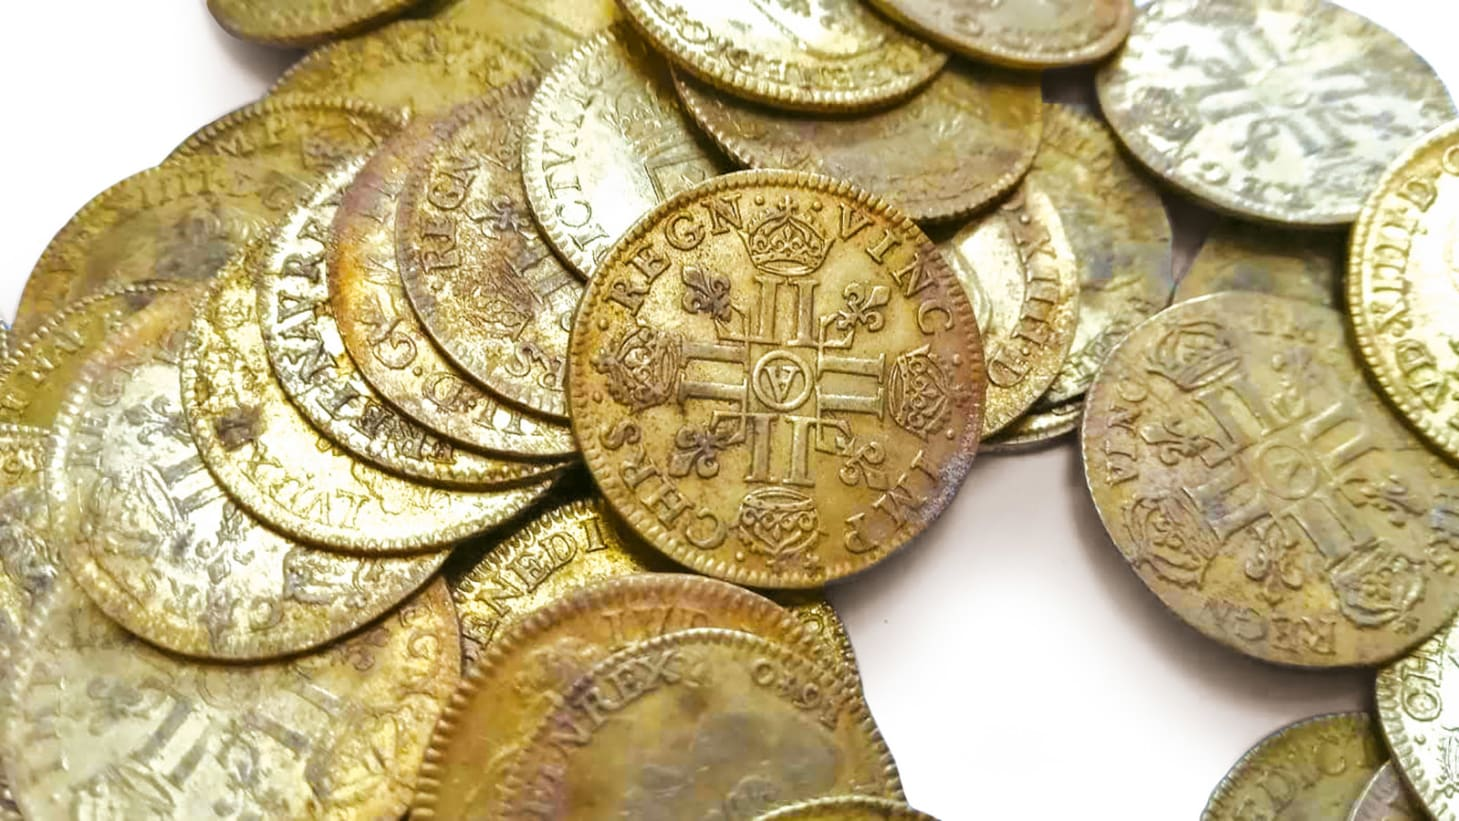 Three builders discovered a stash of 239 century gold coins at a manor in Plozévet, Brittany in 2019, which could earn up to €300,000 ($356,490) at auction in September, 2021.